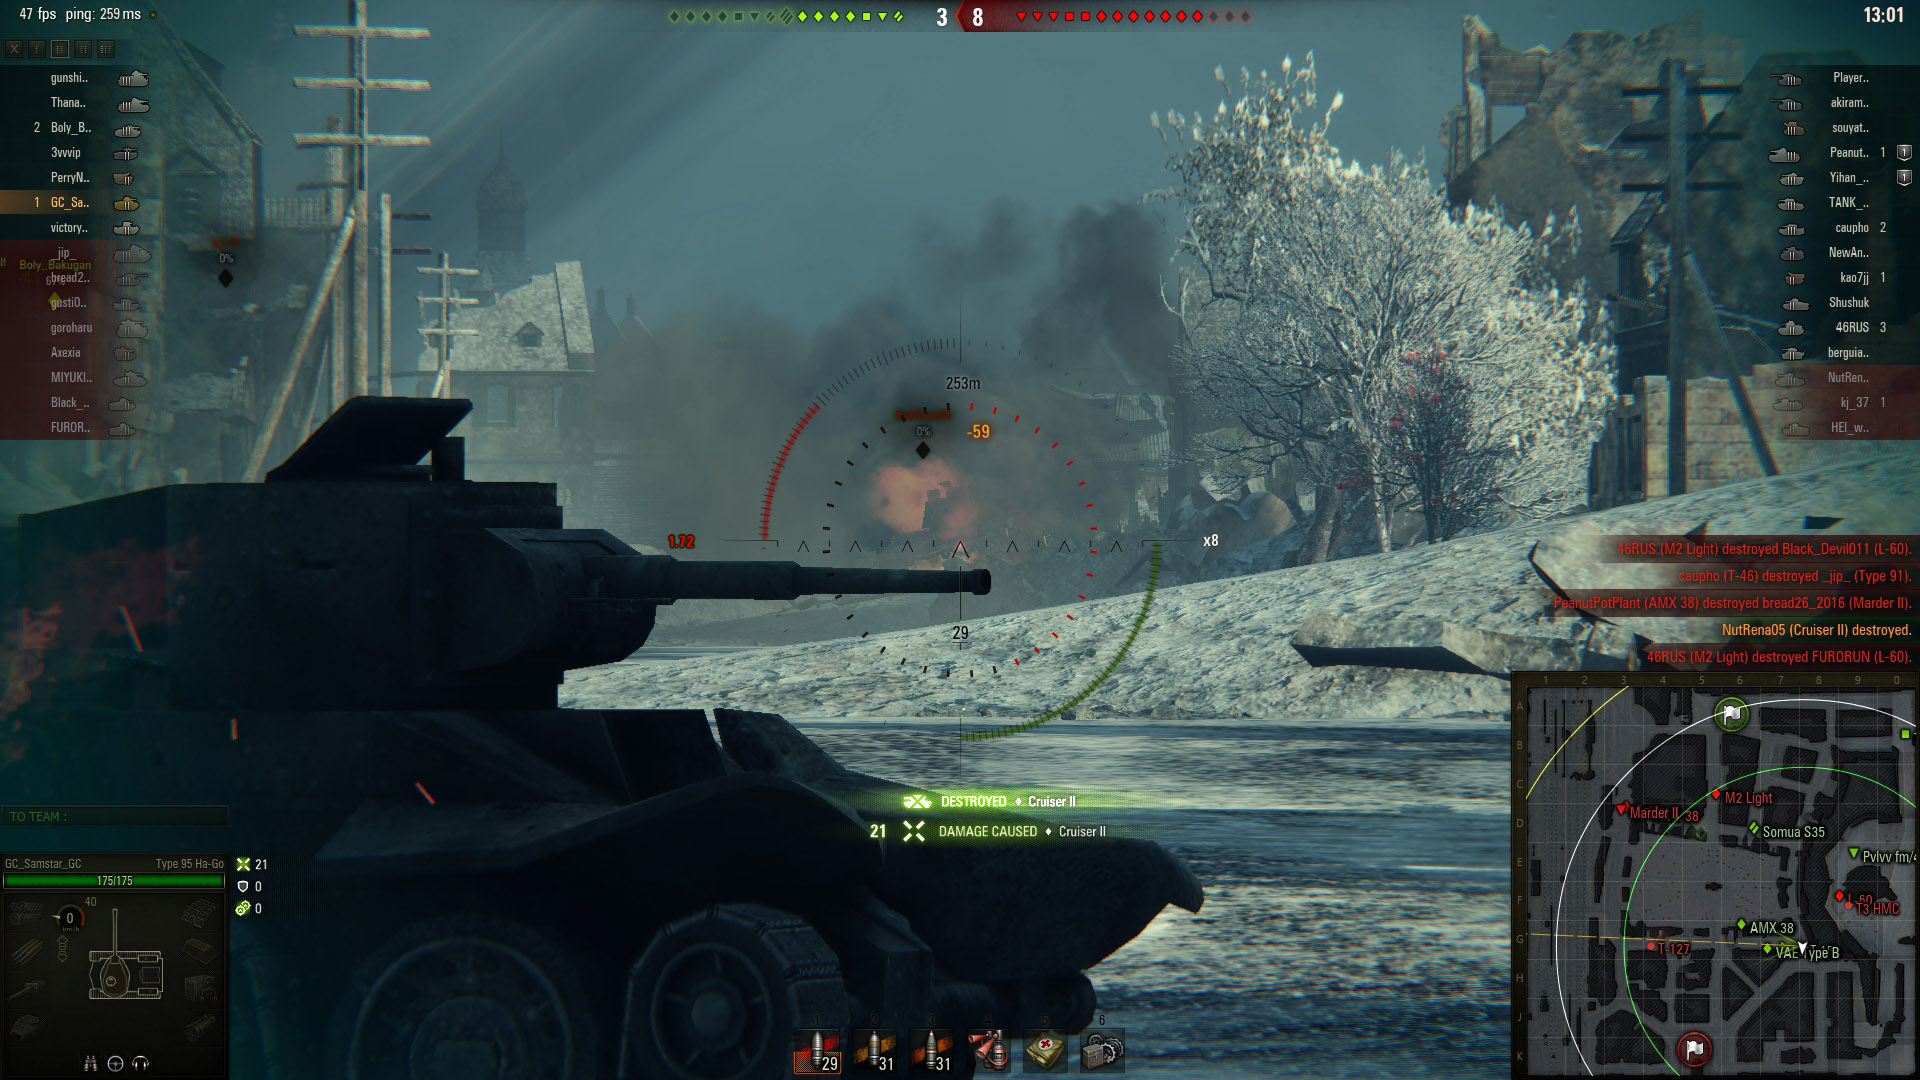 Versing anything other than Tier 2s and lightly-armored Tier 3s would be a disaster for the Type 95 Ha-Go.